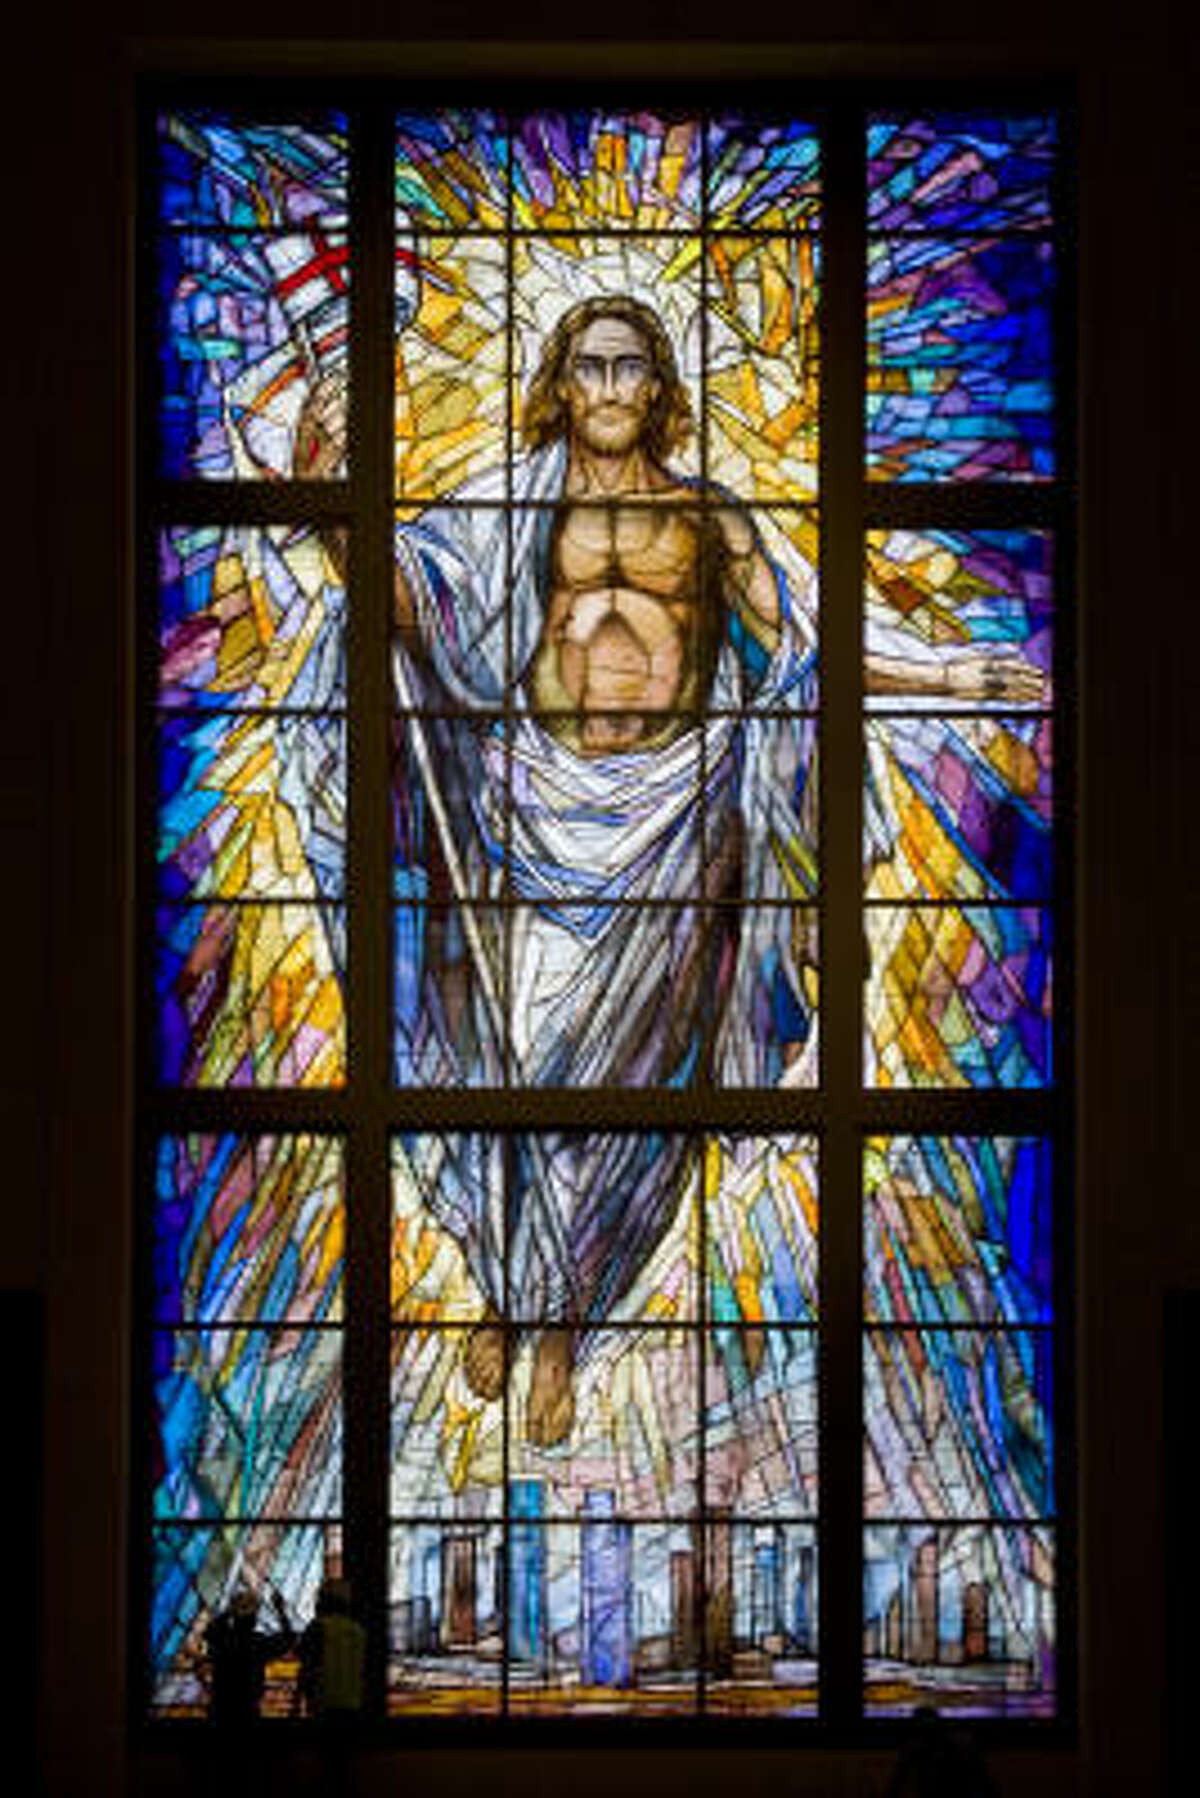 The tiny figures of two workers can barely be seen at bottom left against the massive Resurrection window at the Co-Cathedral of the Sacred Heart in downtown. The 40-foot-tall, 20-foot-wide stained-glass window is on the facade of the cathedral.